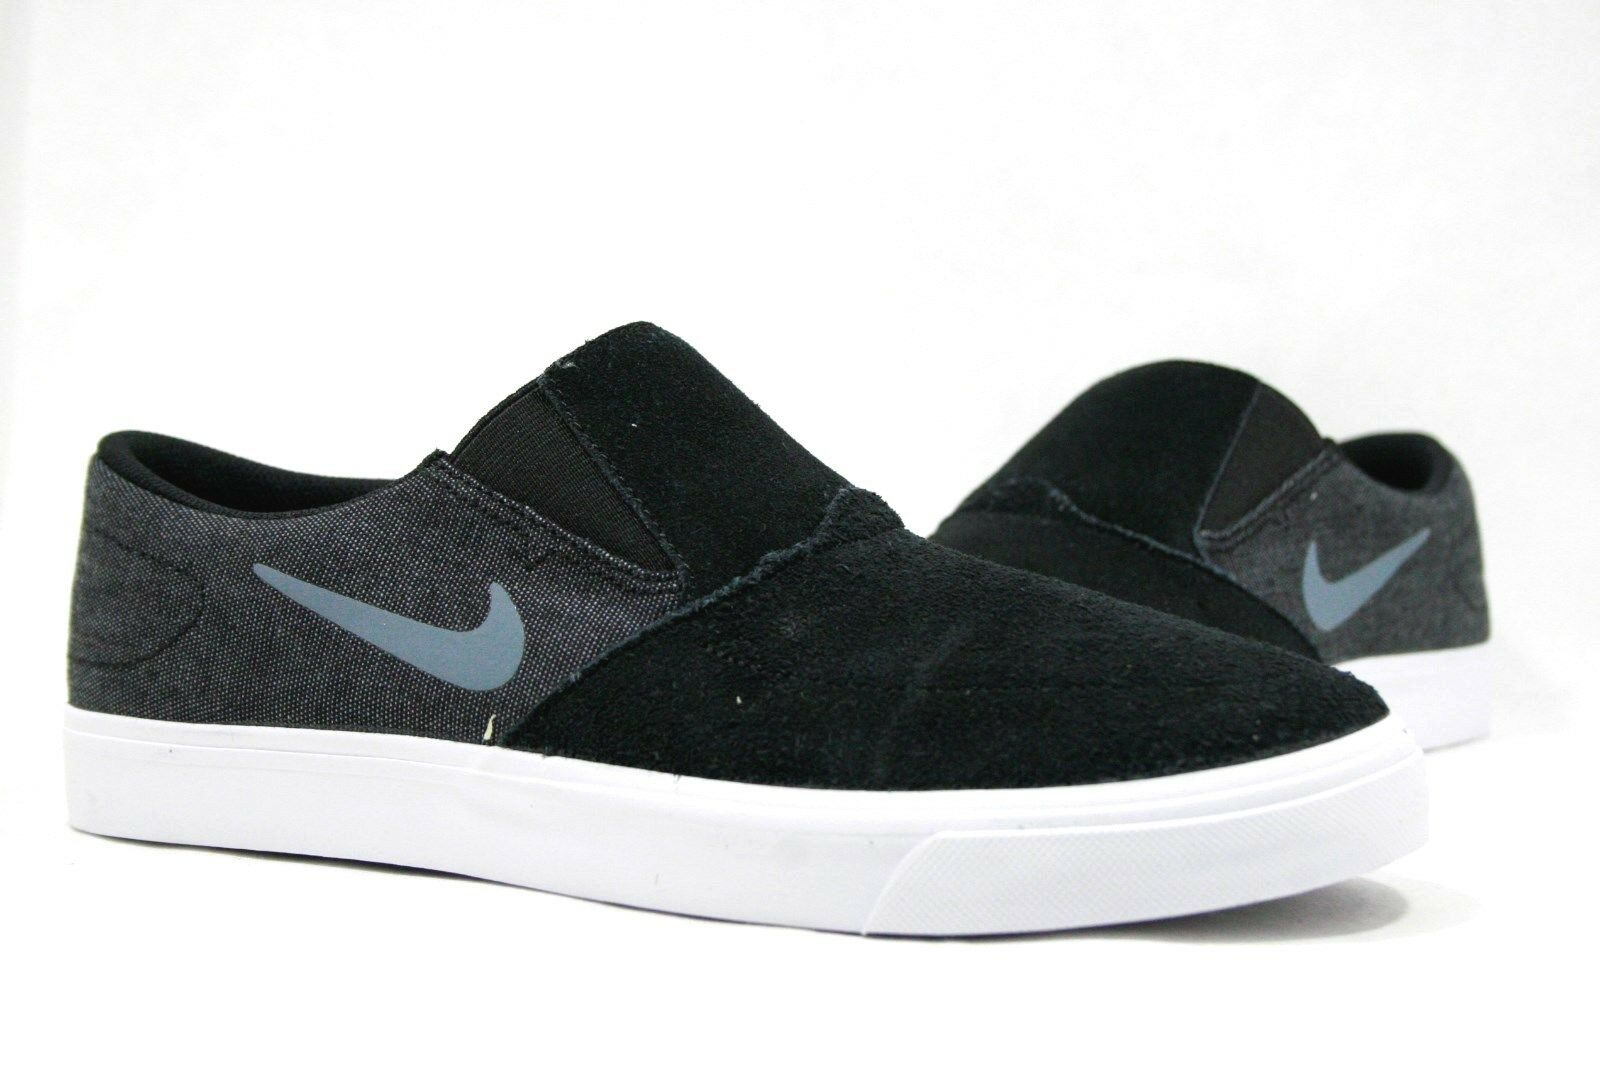 Nike Men's Shoes SB PORTMORE SLIP BLACK/BLUE 725043-041 Men's Comfortable